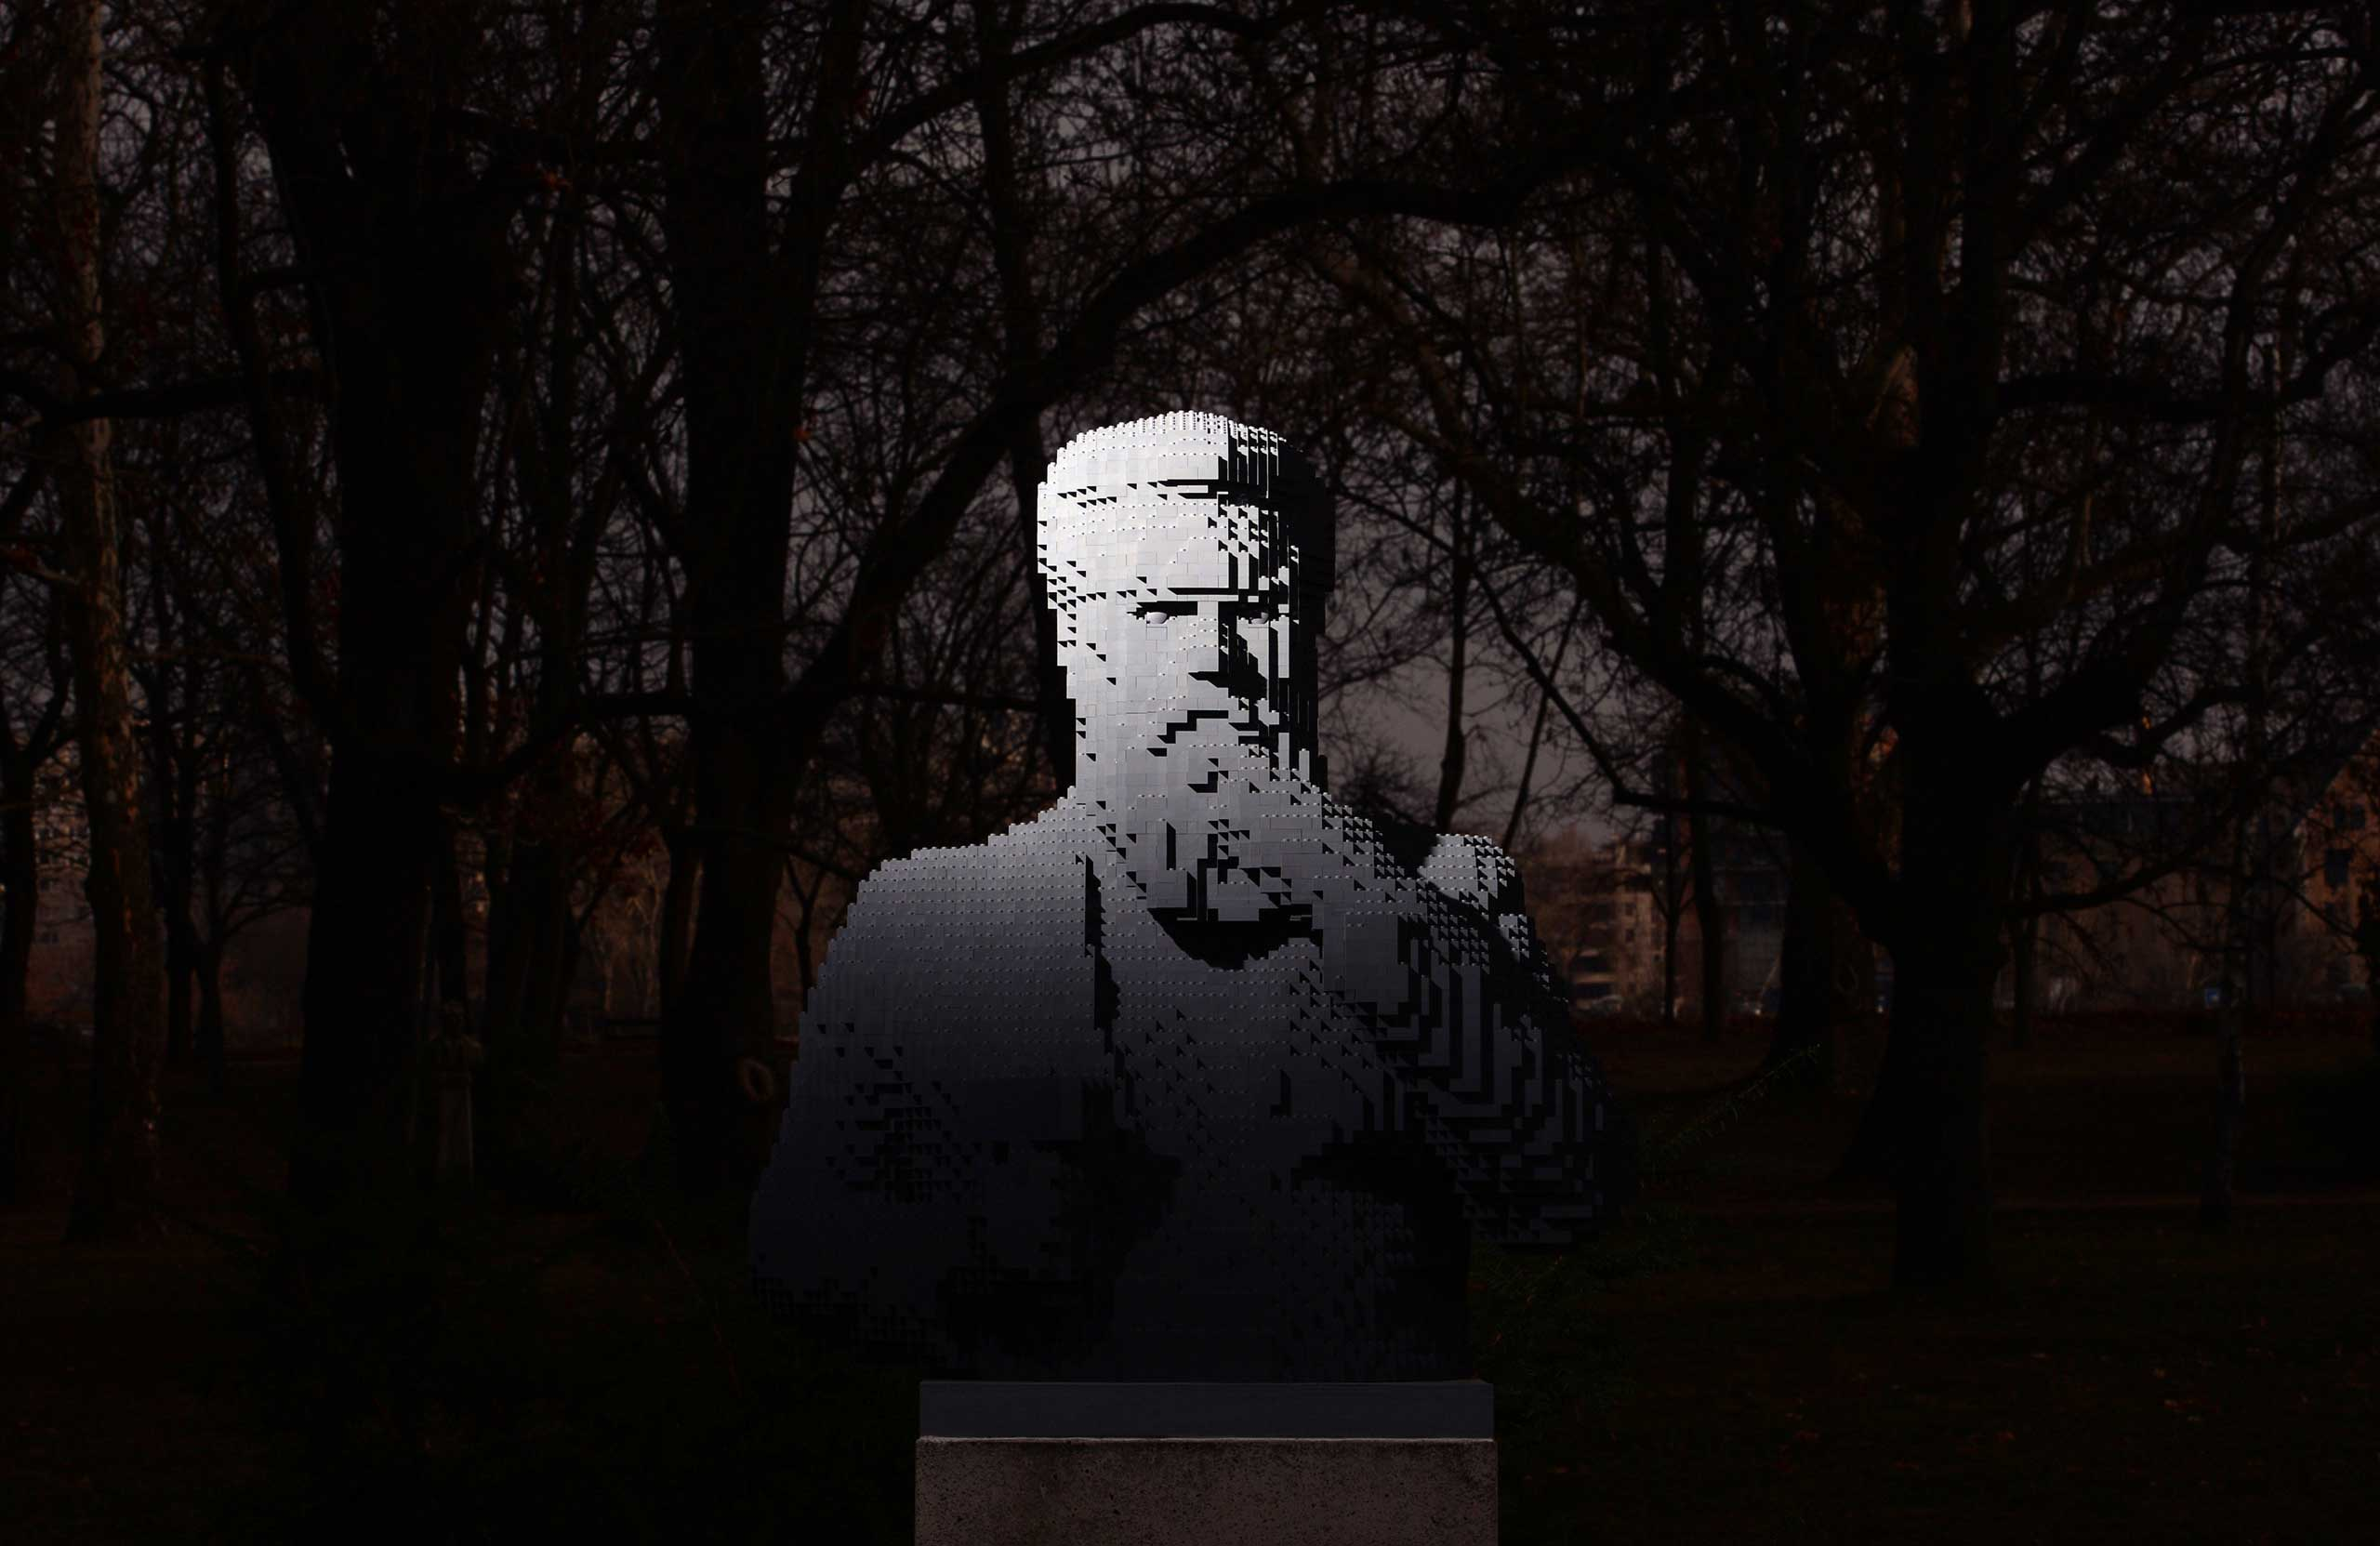 A stolen bronze statue of the late Hungarian sculptor Miklos Izso is substituted by a statue made of LEGO bricks, created by Hungarian lego artist  Balazs Doczy in Margaret Island of Budapest on Jan. 16, 2015.